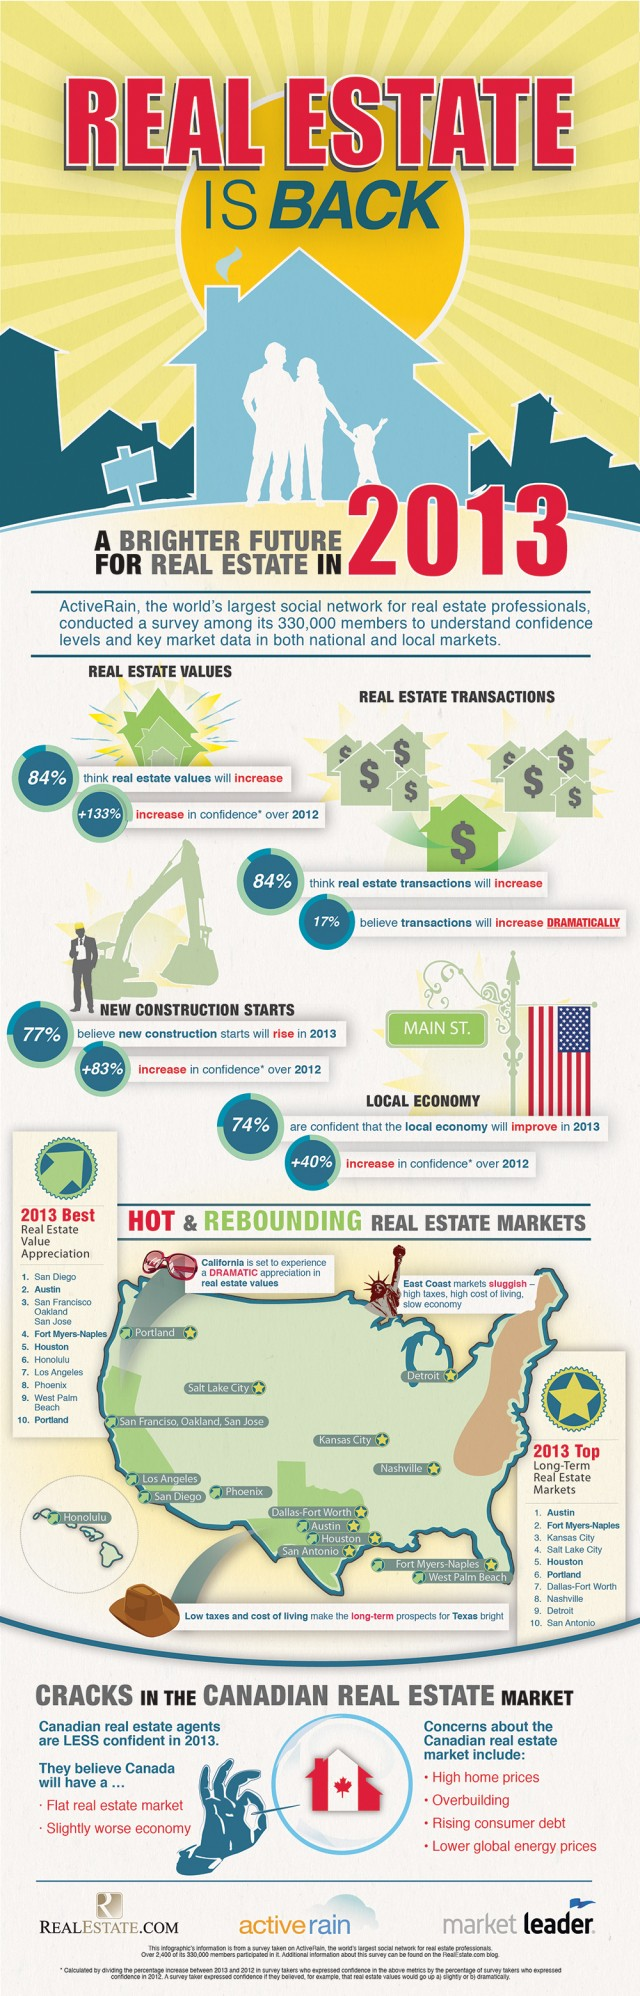 Real Estate Trends 2013